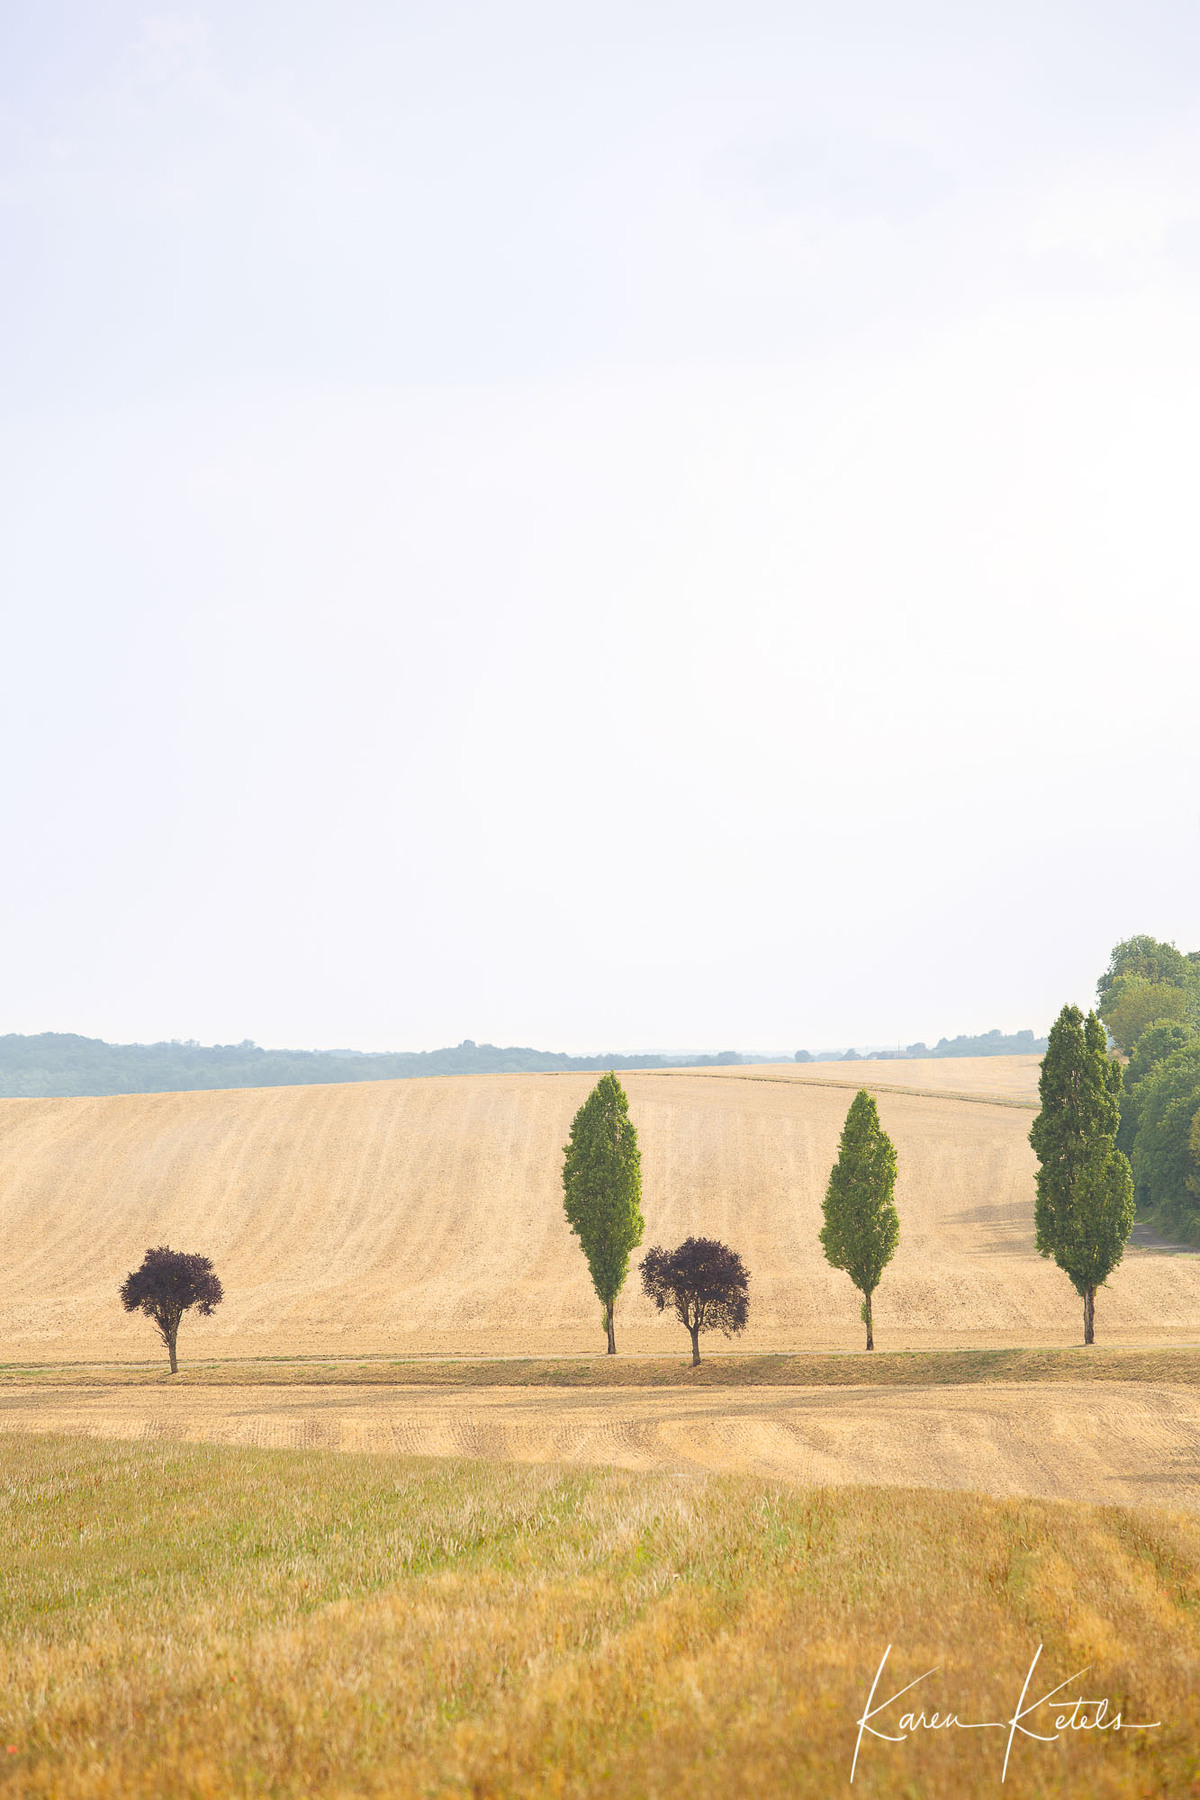 Minimalistic portrait of trees in Bourgogne by Karen Ketels